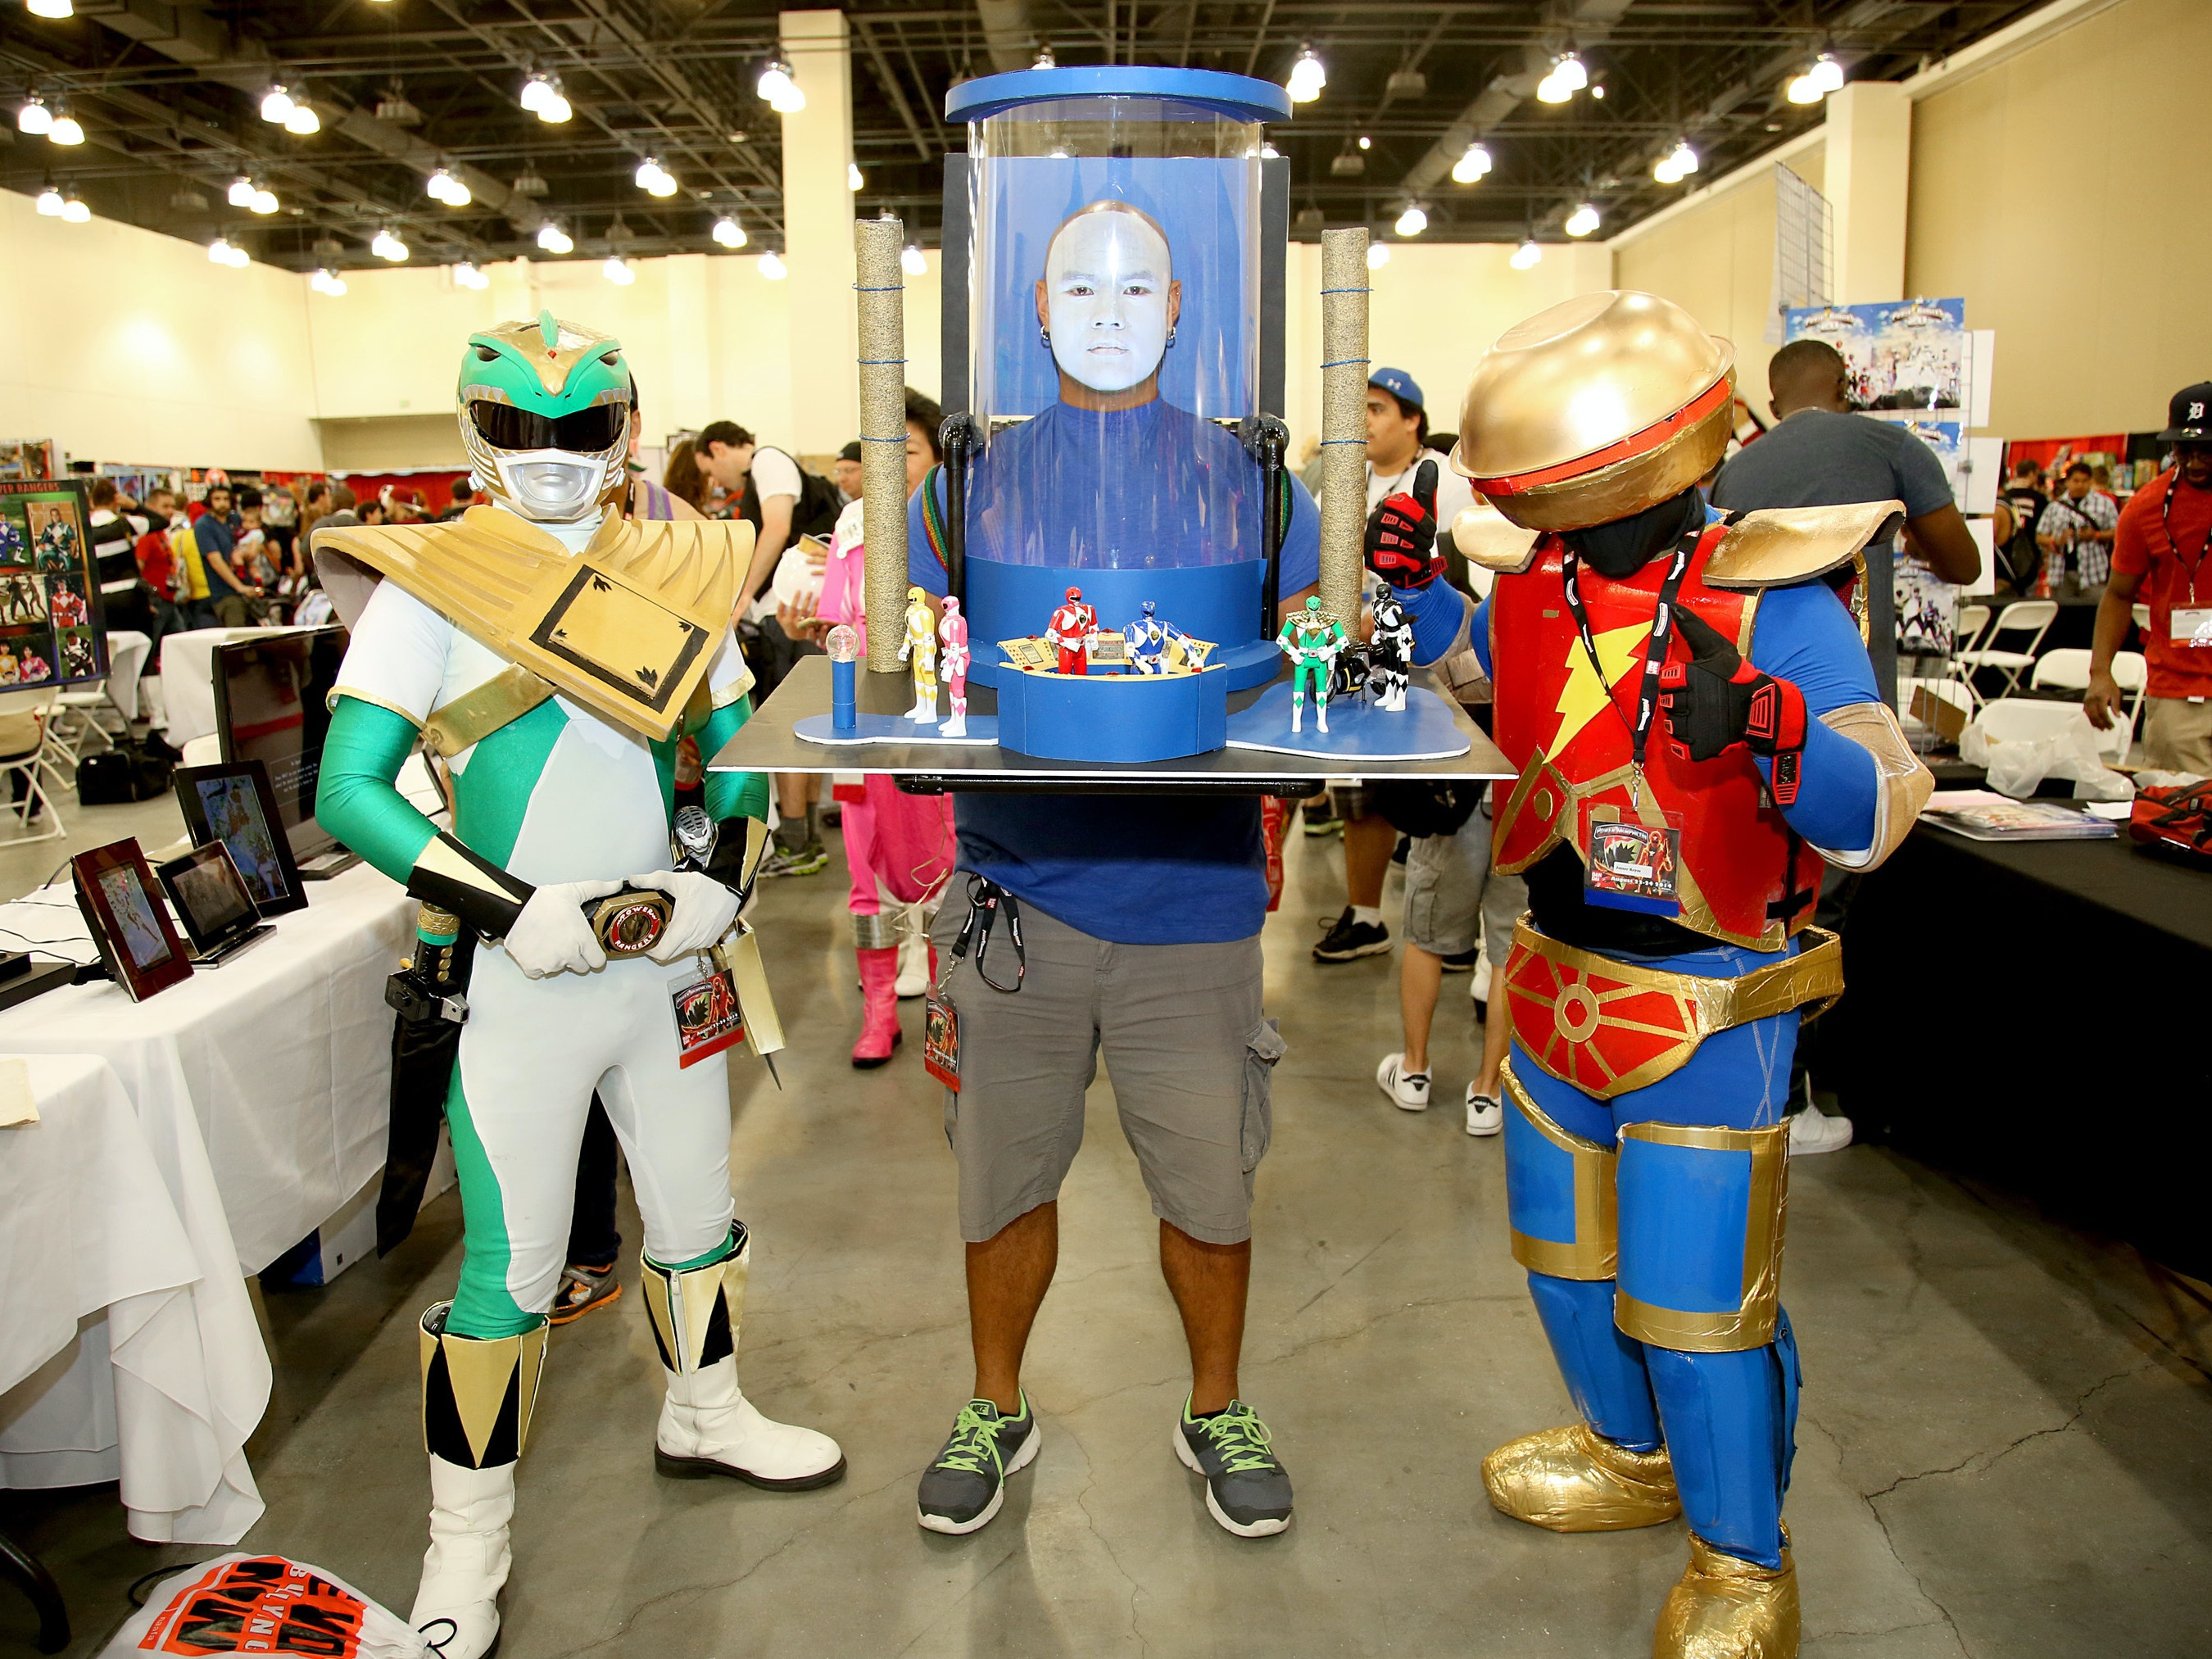 Pursuing Happiness at a Power Rangers Convention